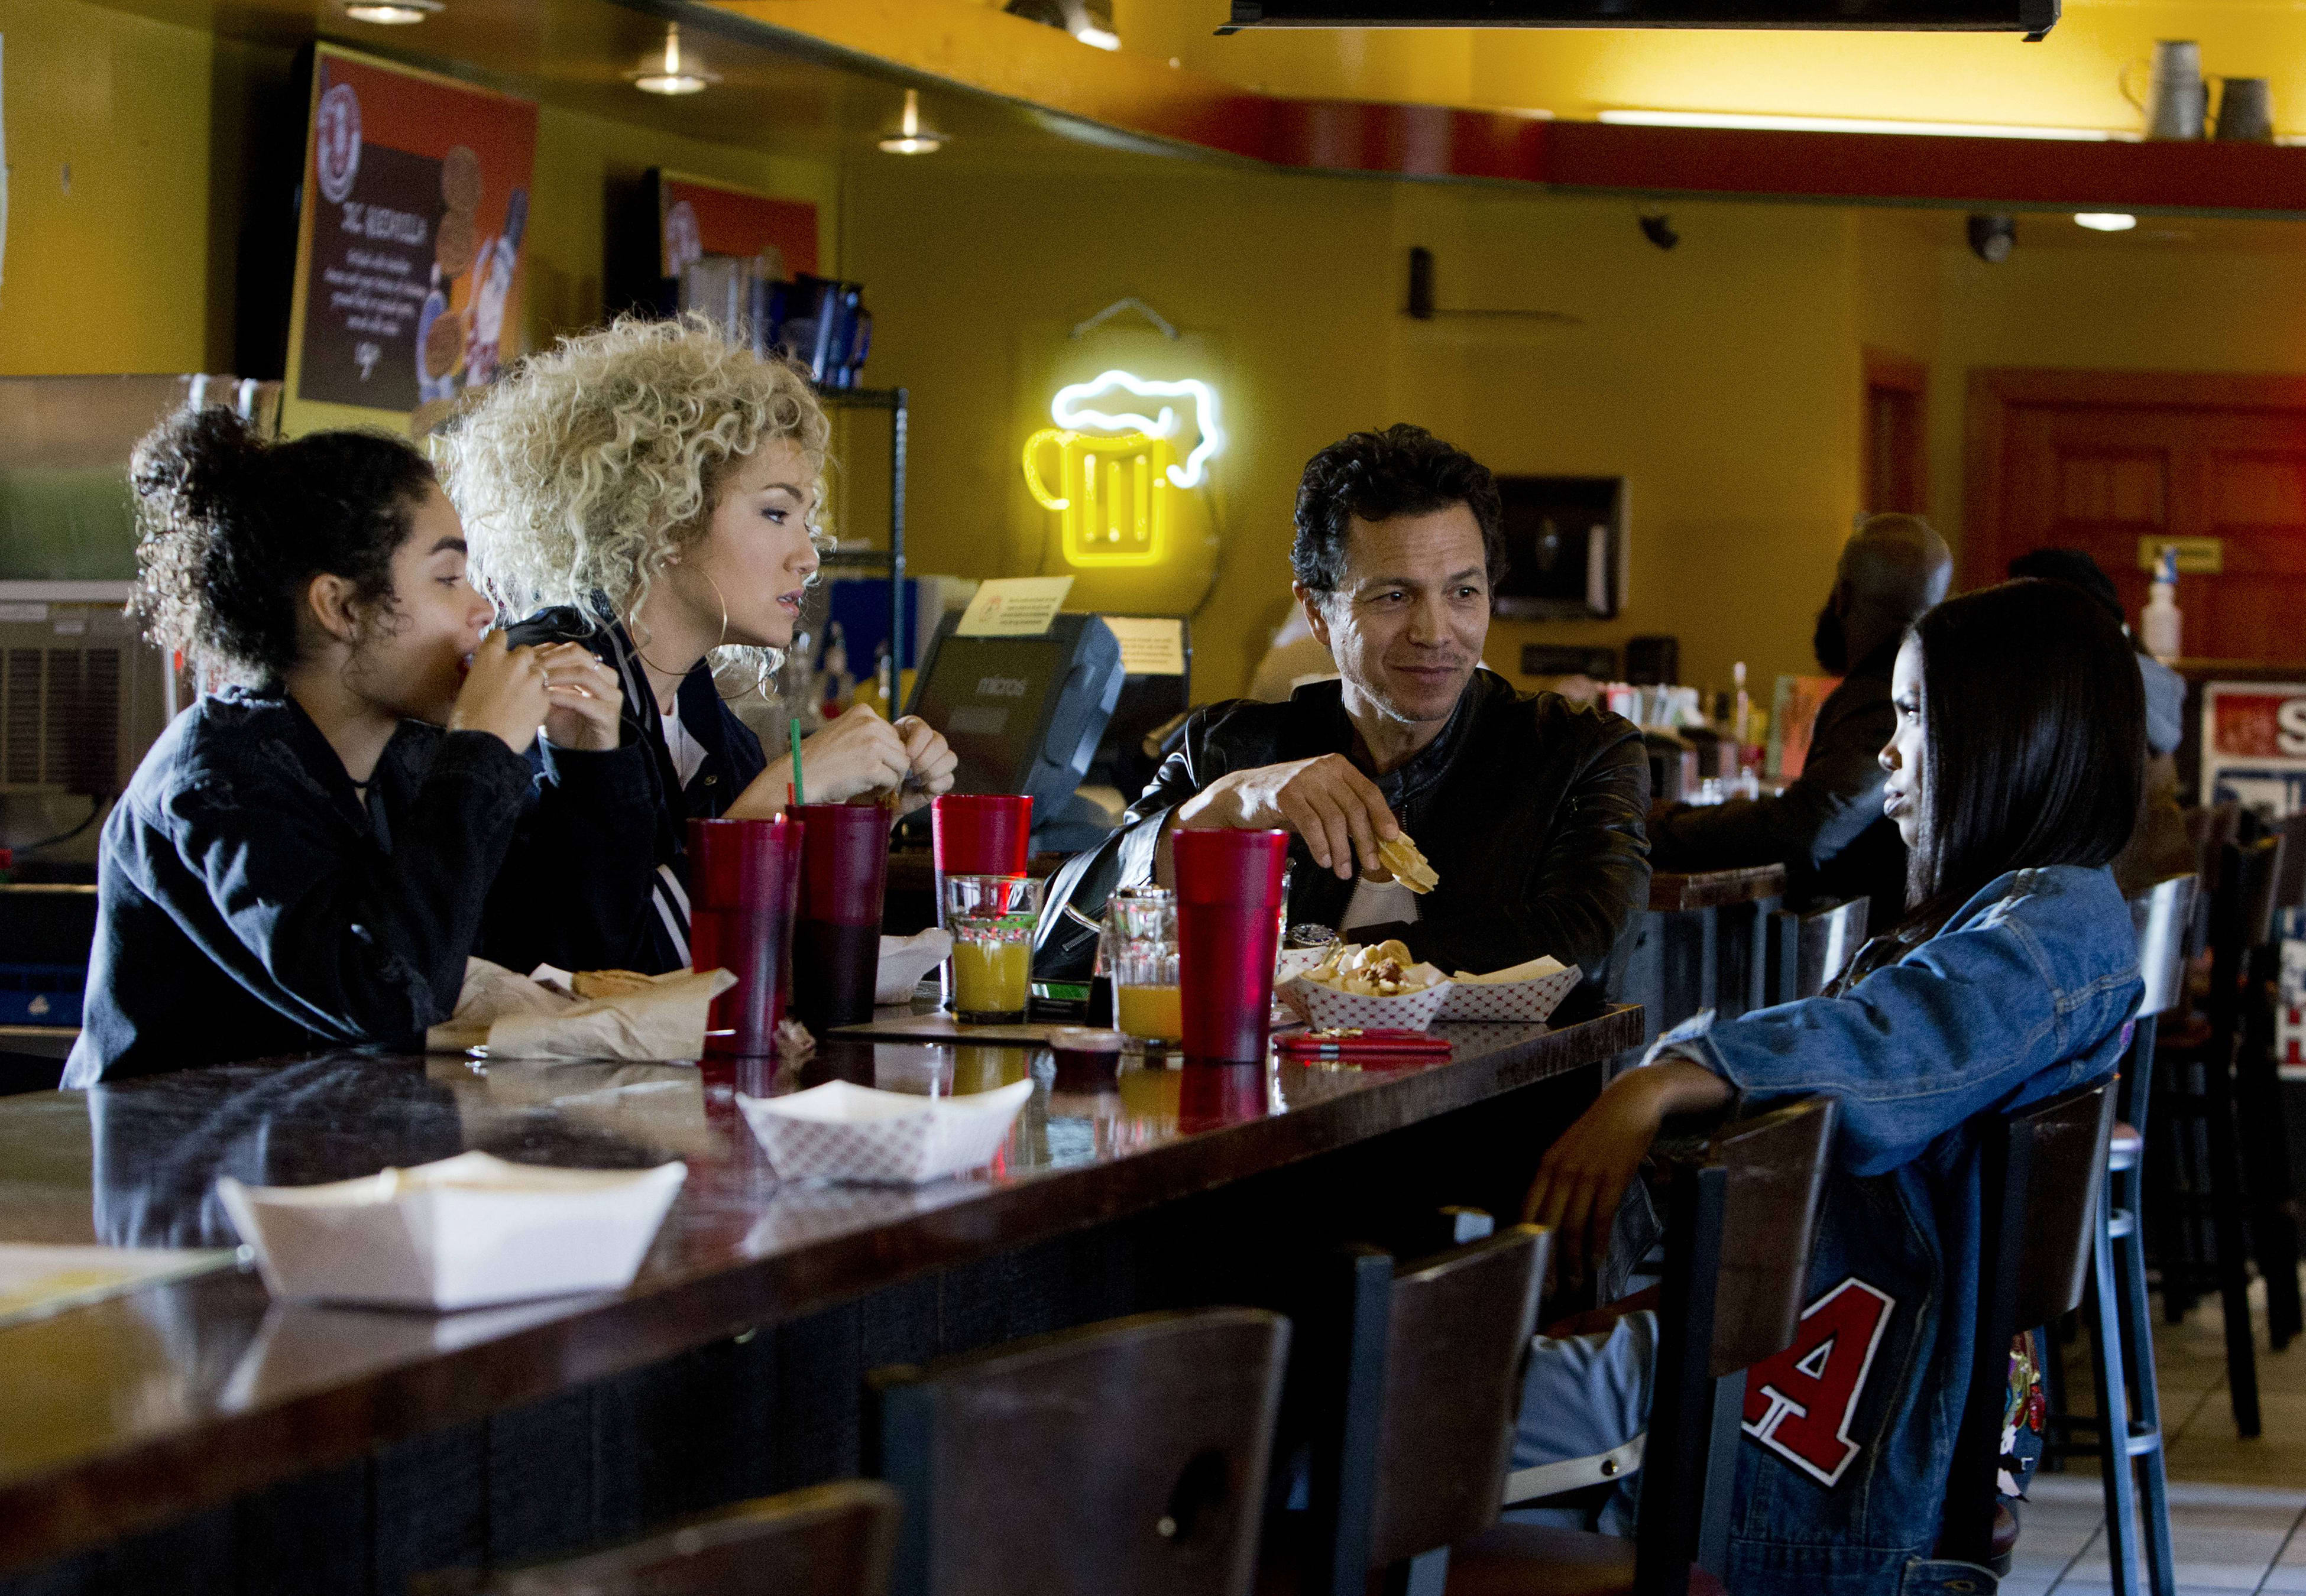 Star Season 1 Episode 2 Review: The Devil You Know - TV Fanatic